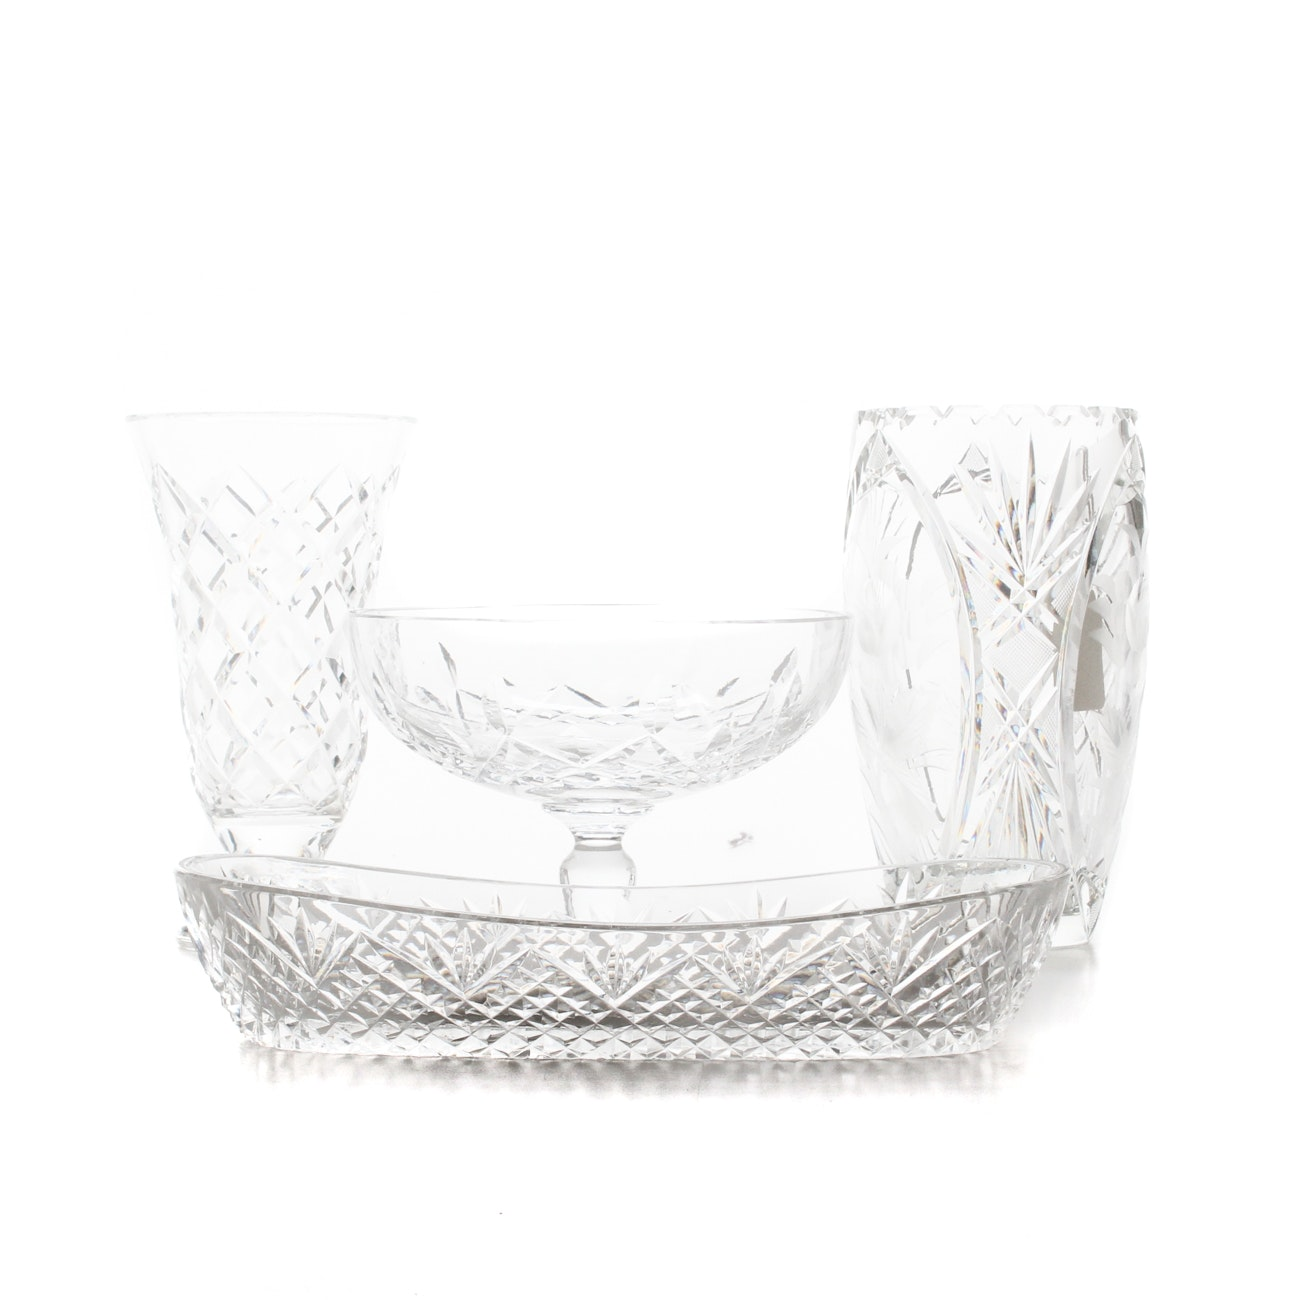 Waterford Crystal Decor with a Wheel Cut Glass Vase